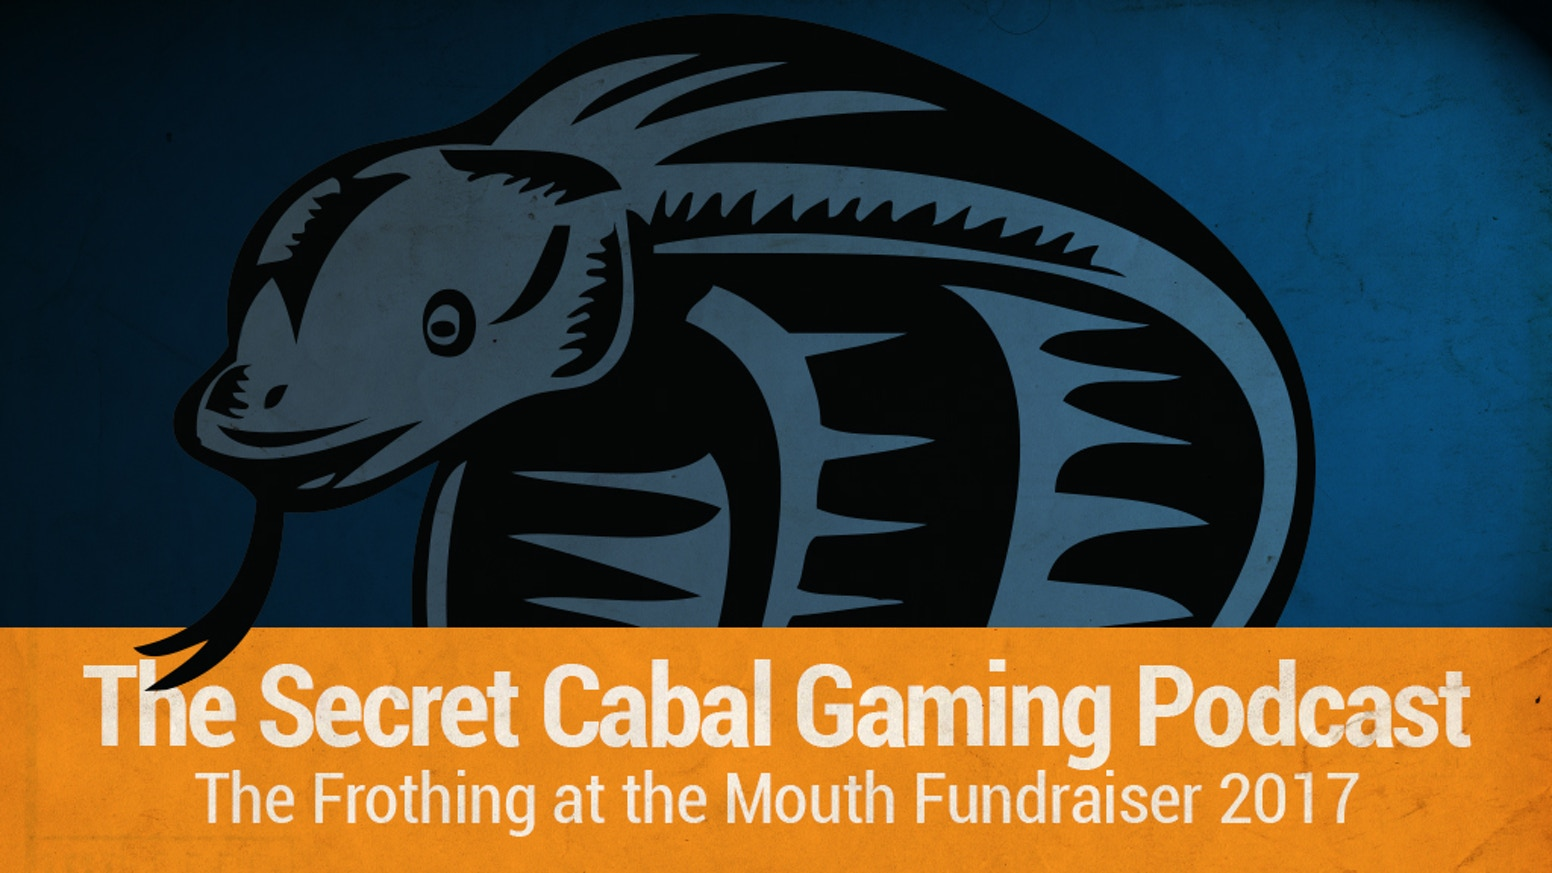 The Secret Cabal Gaming Podcast is Goin' Wild in 2017! by Secret